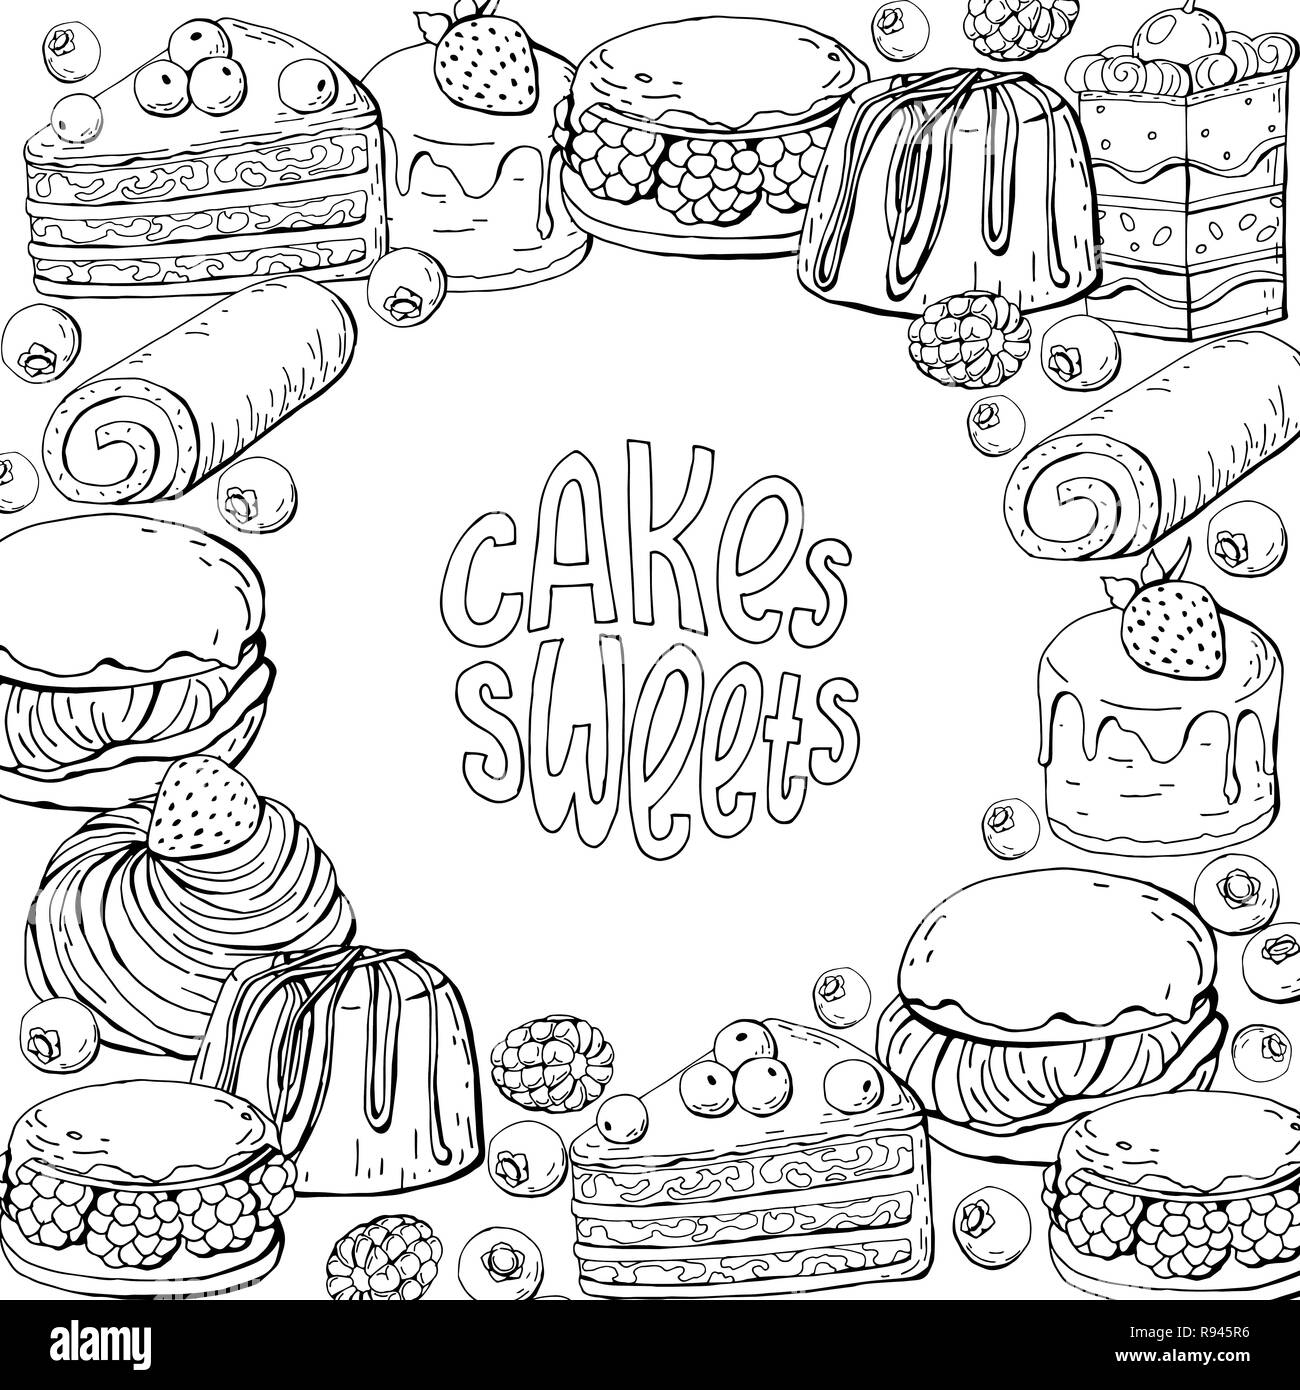 Vector template with monochrome hand draw sweet cakes and lettering for design flyers and posters, black and white - Stock Image